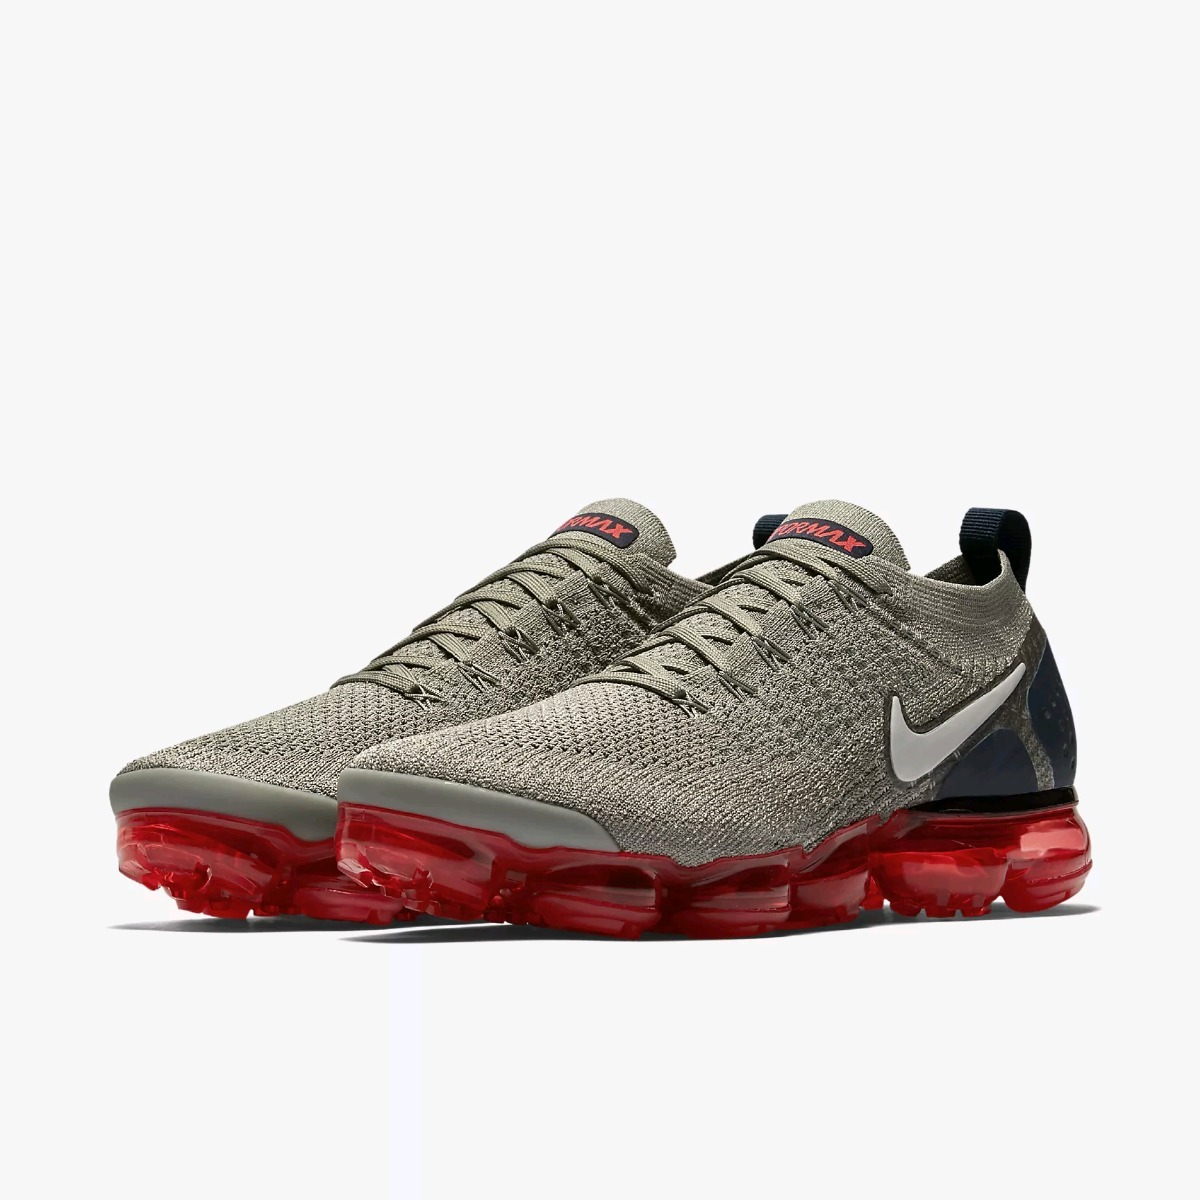 af7fdcdd25a41 ... low cost nike air vapormax flyknit 2 grey red hombre. cargando zoom.  7cb62 c6f01